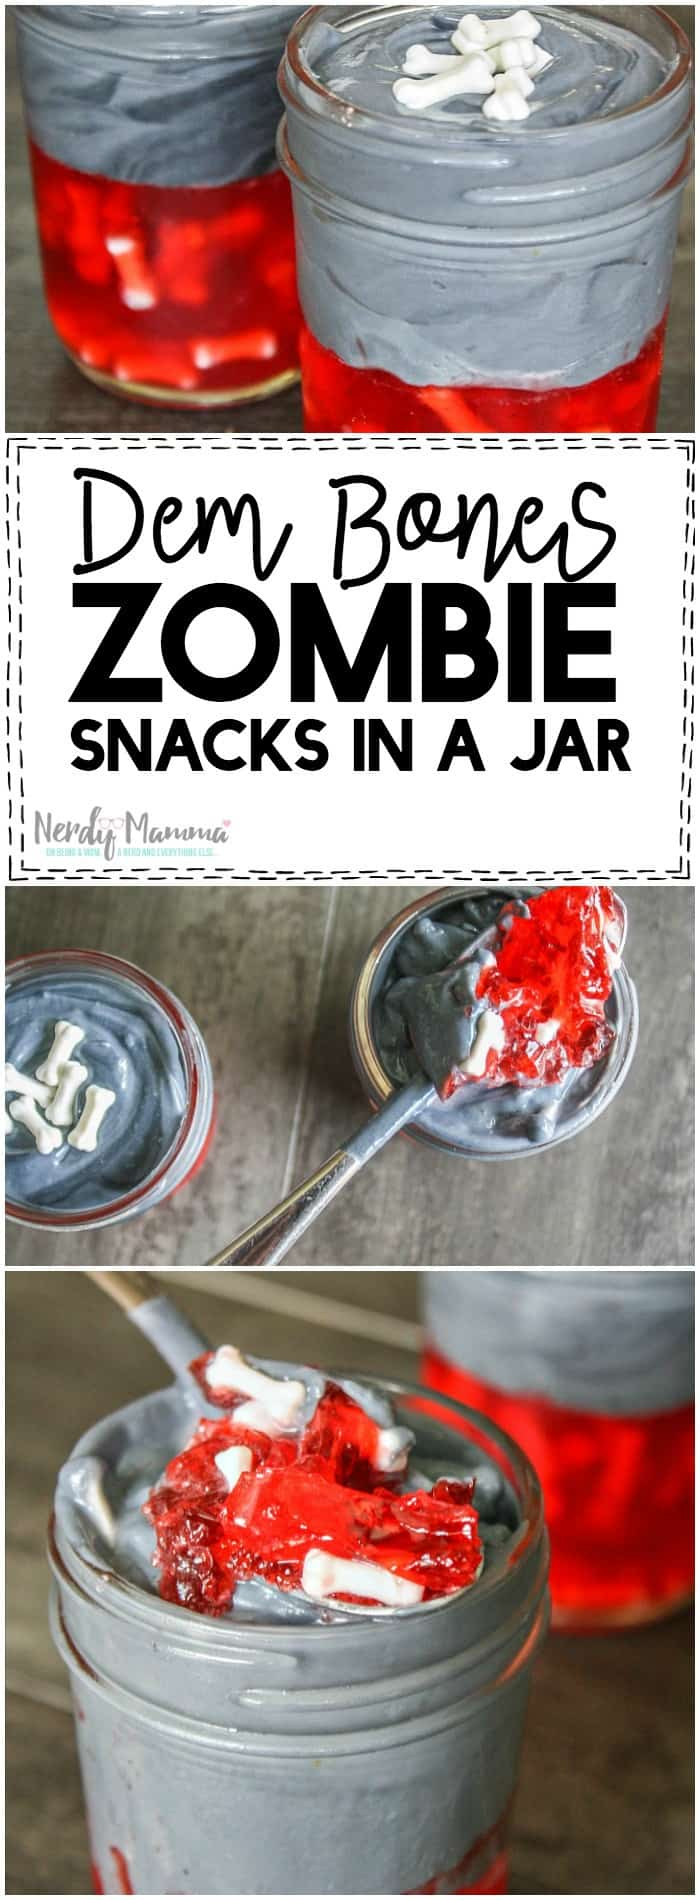 Oh, this recipe is so simple. But the kids are going to LOVE it! I mean--who doesn't want Zombie Snacks in a Jar! LOL!